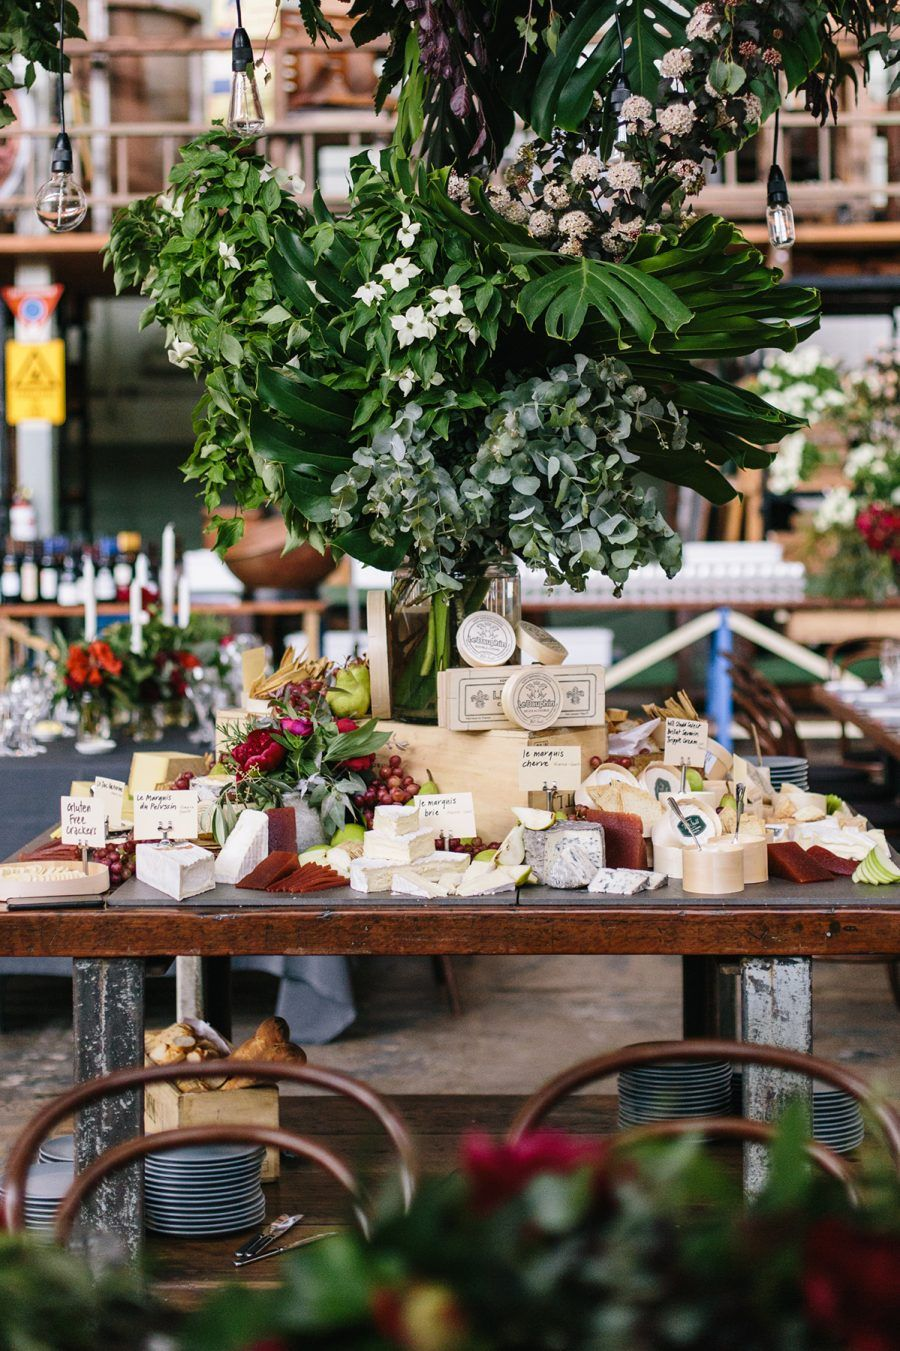 Ed Dixon Food Design creative Melbourne wedding caterer